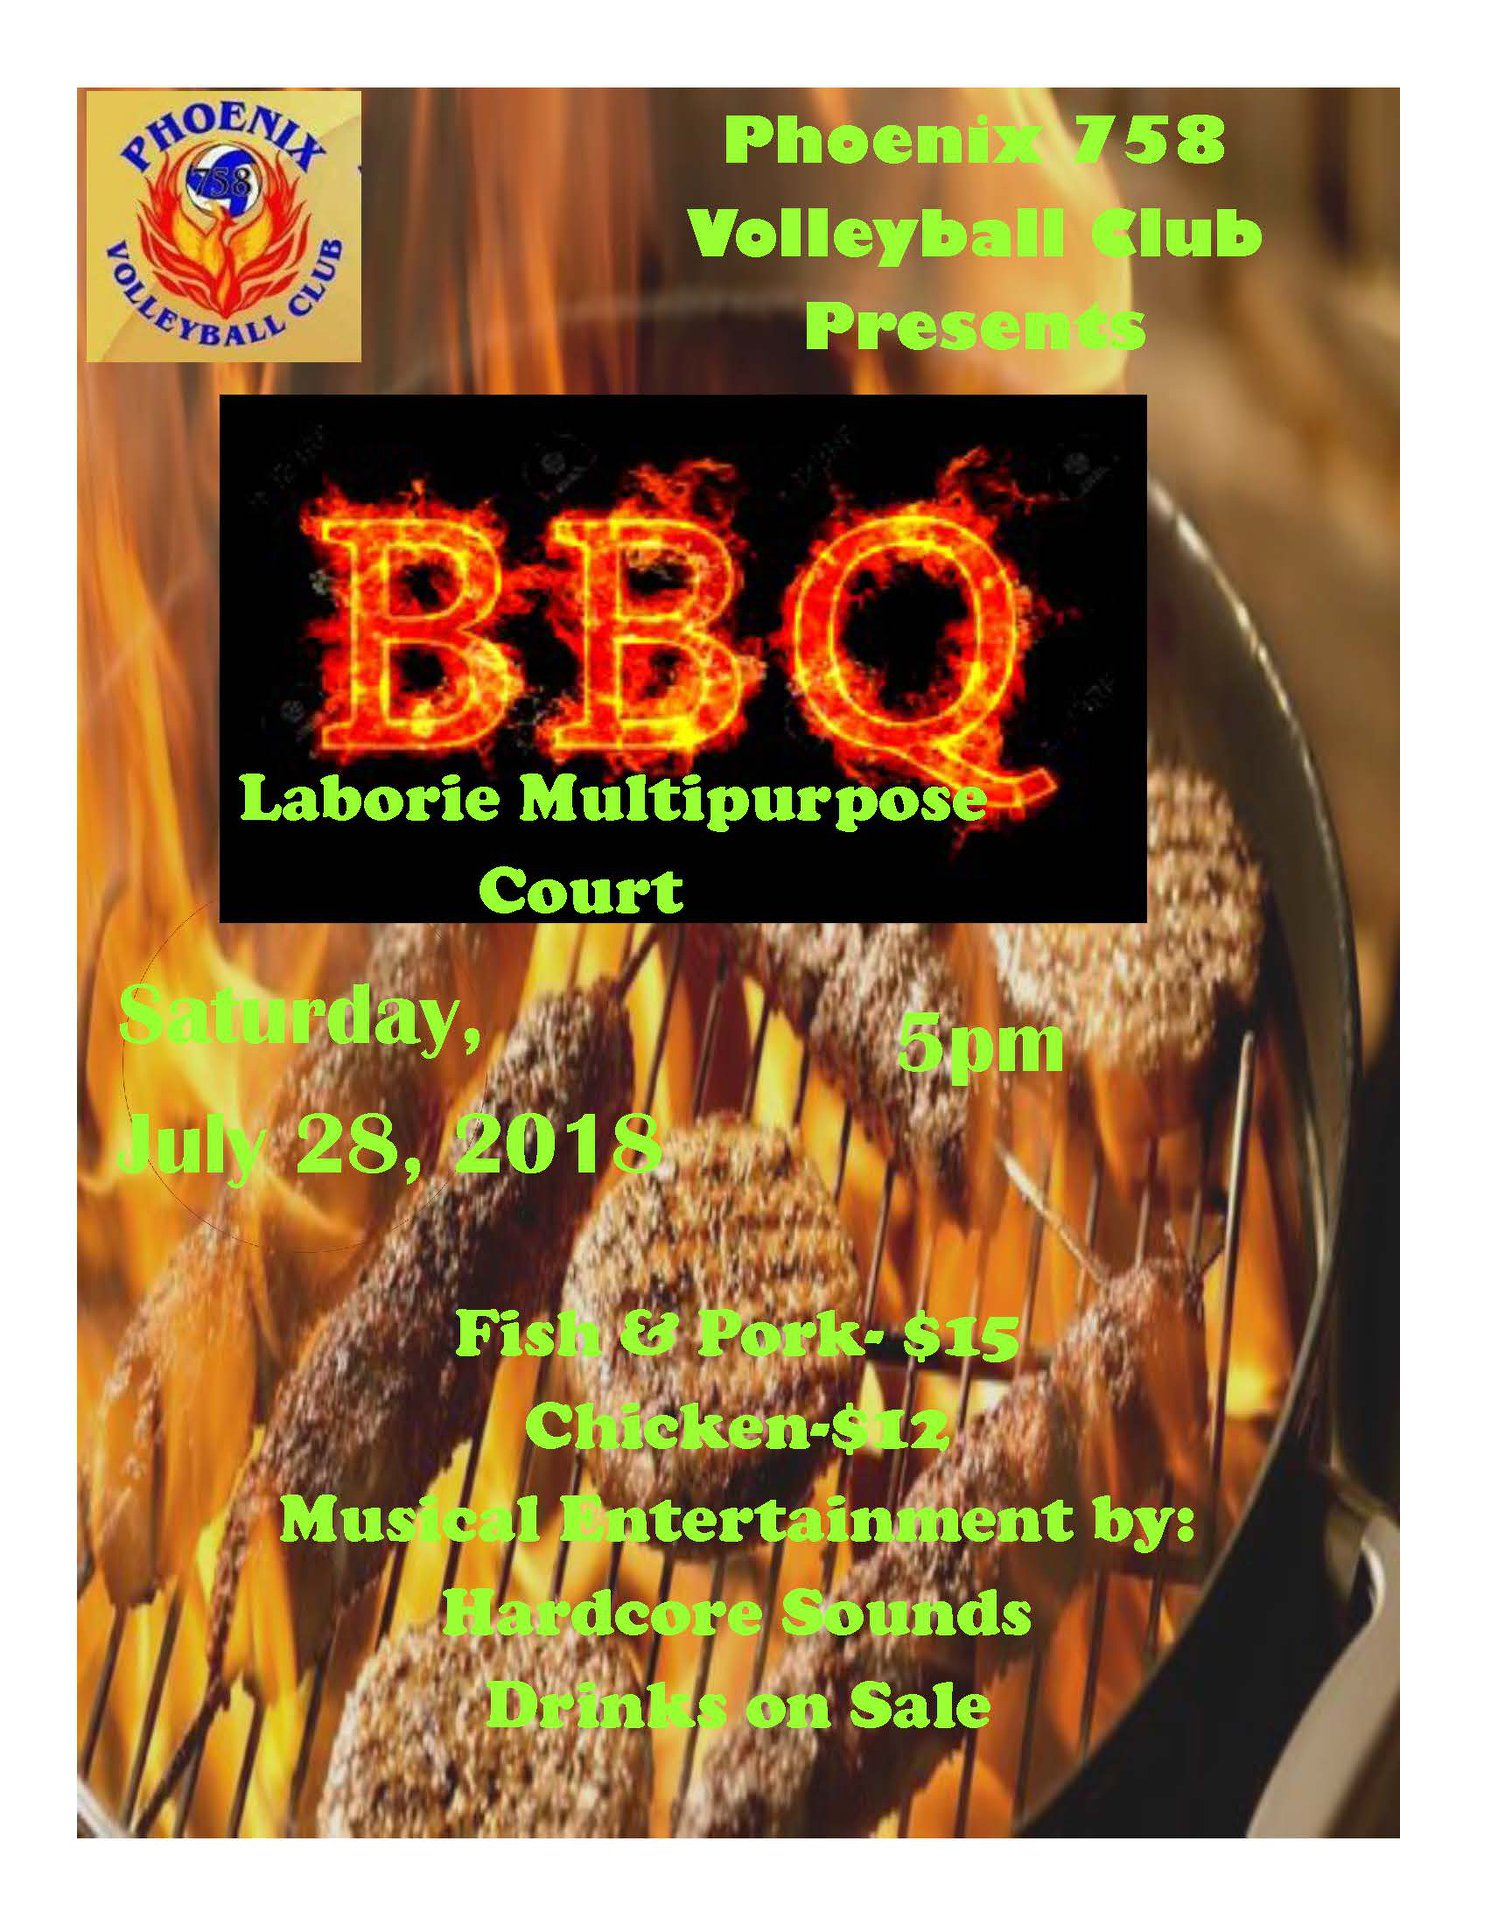 phoenix 758 volleyball club fundraising bbq laborie